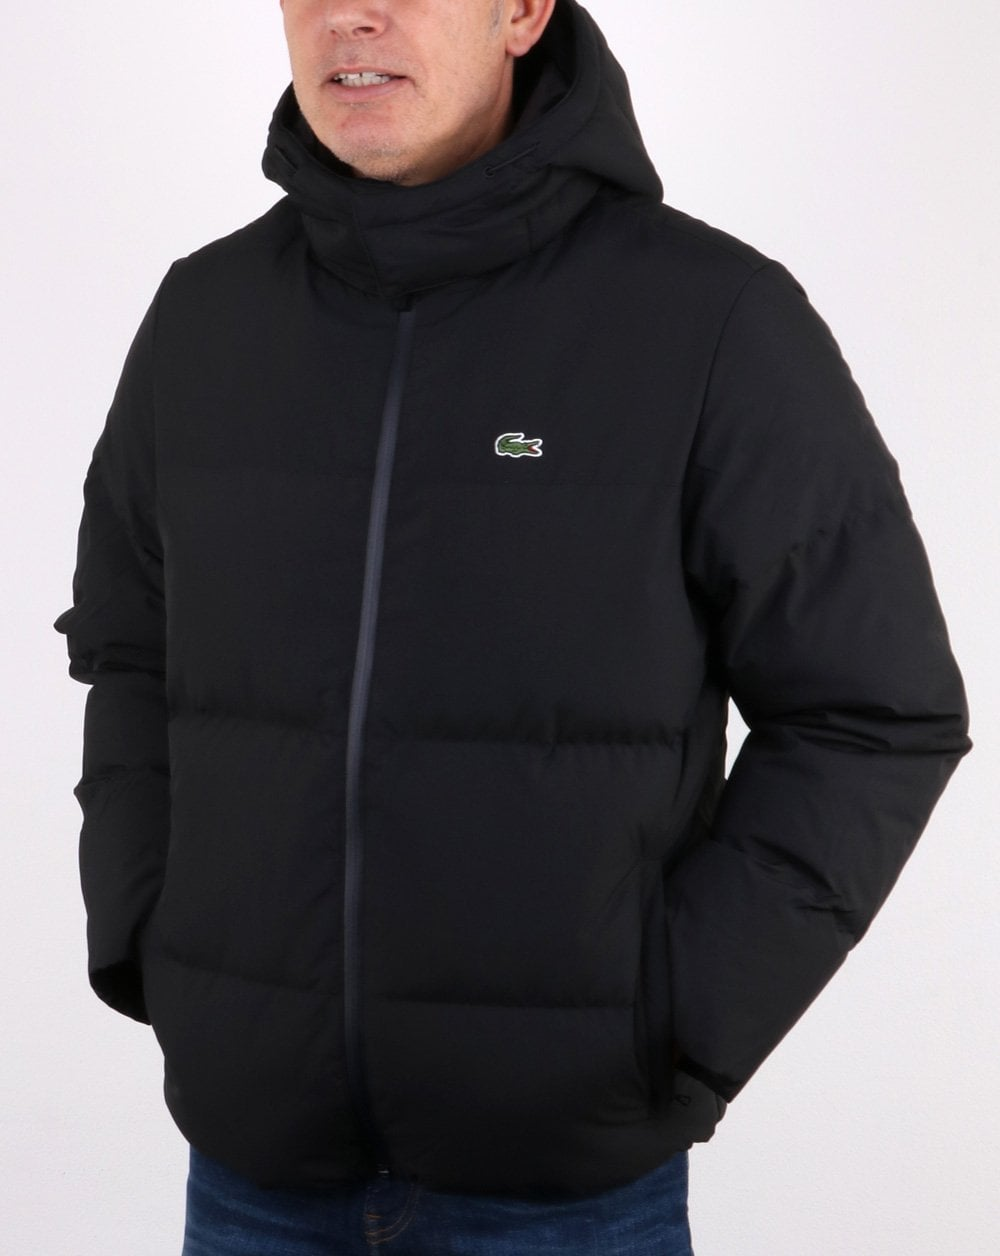 Lacoste Padded Jacket Black Mens Coat Lined Down Warm